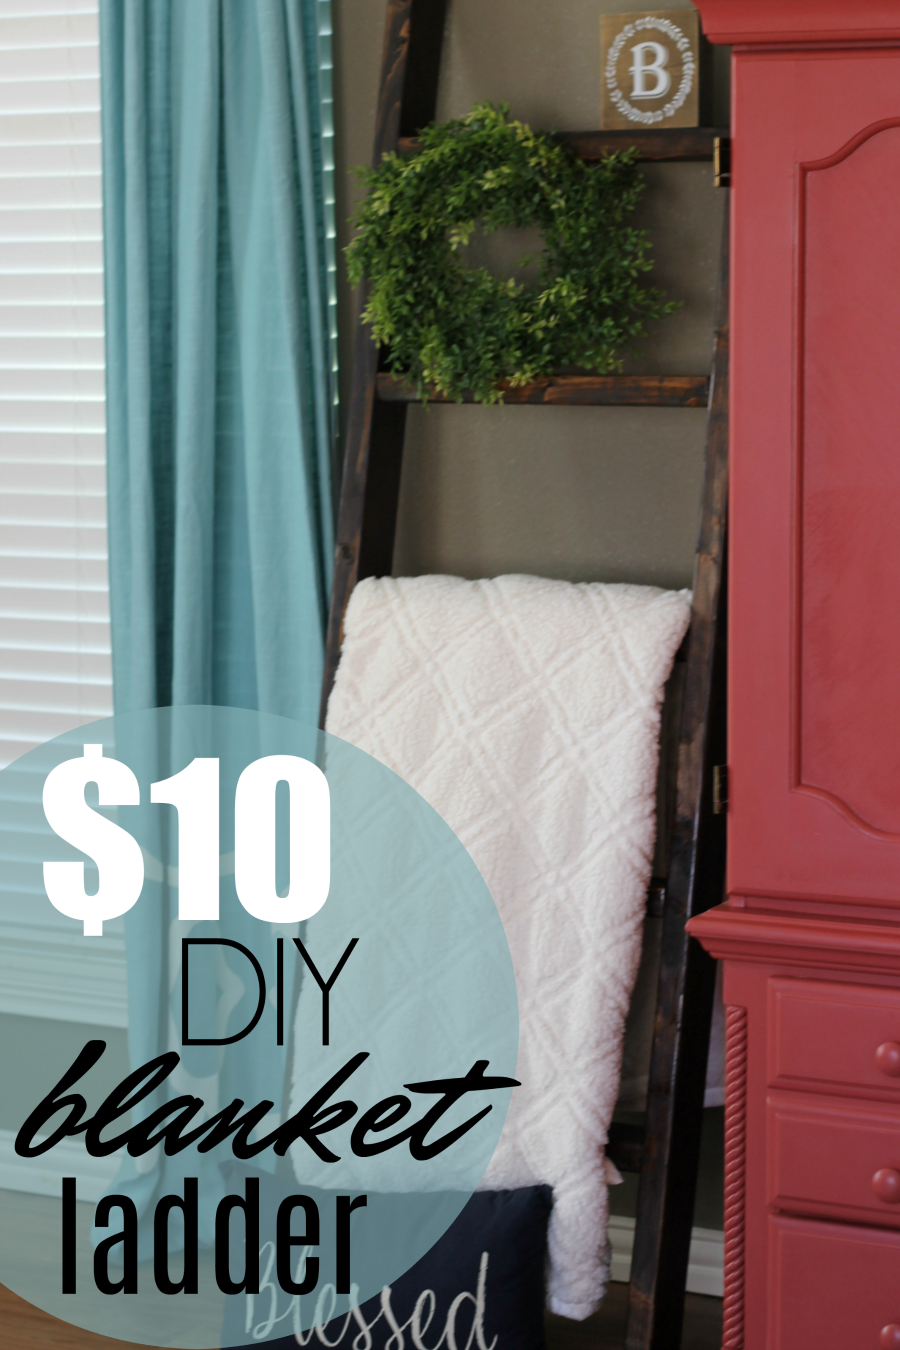 farmhouse style for your home - DIY blanket ladder to organize and decorate